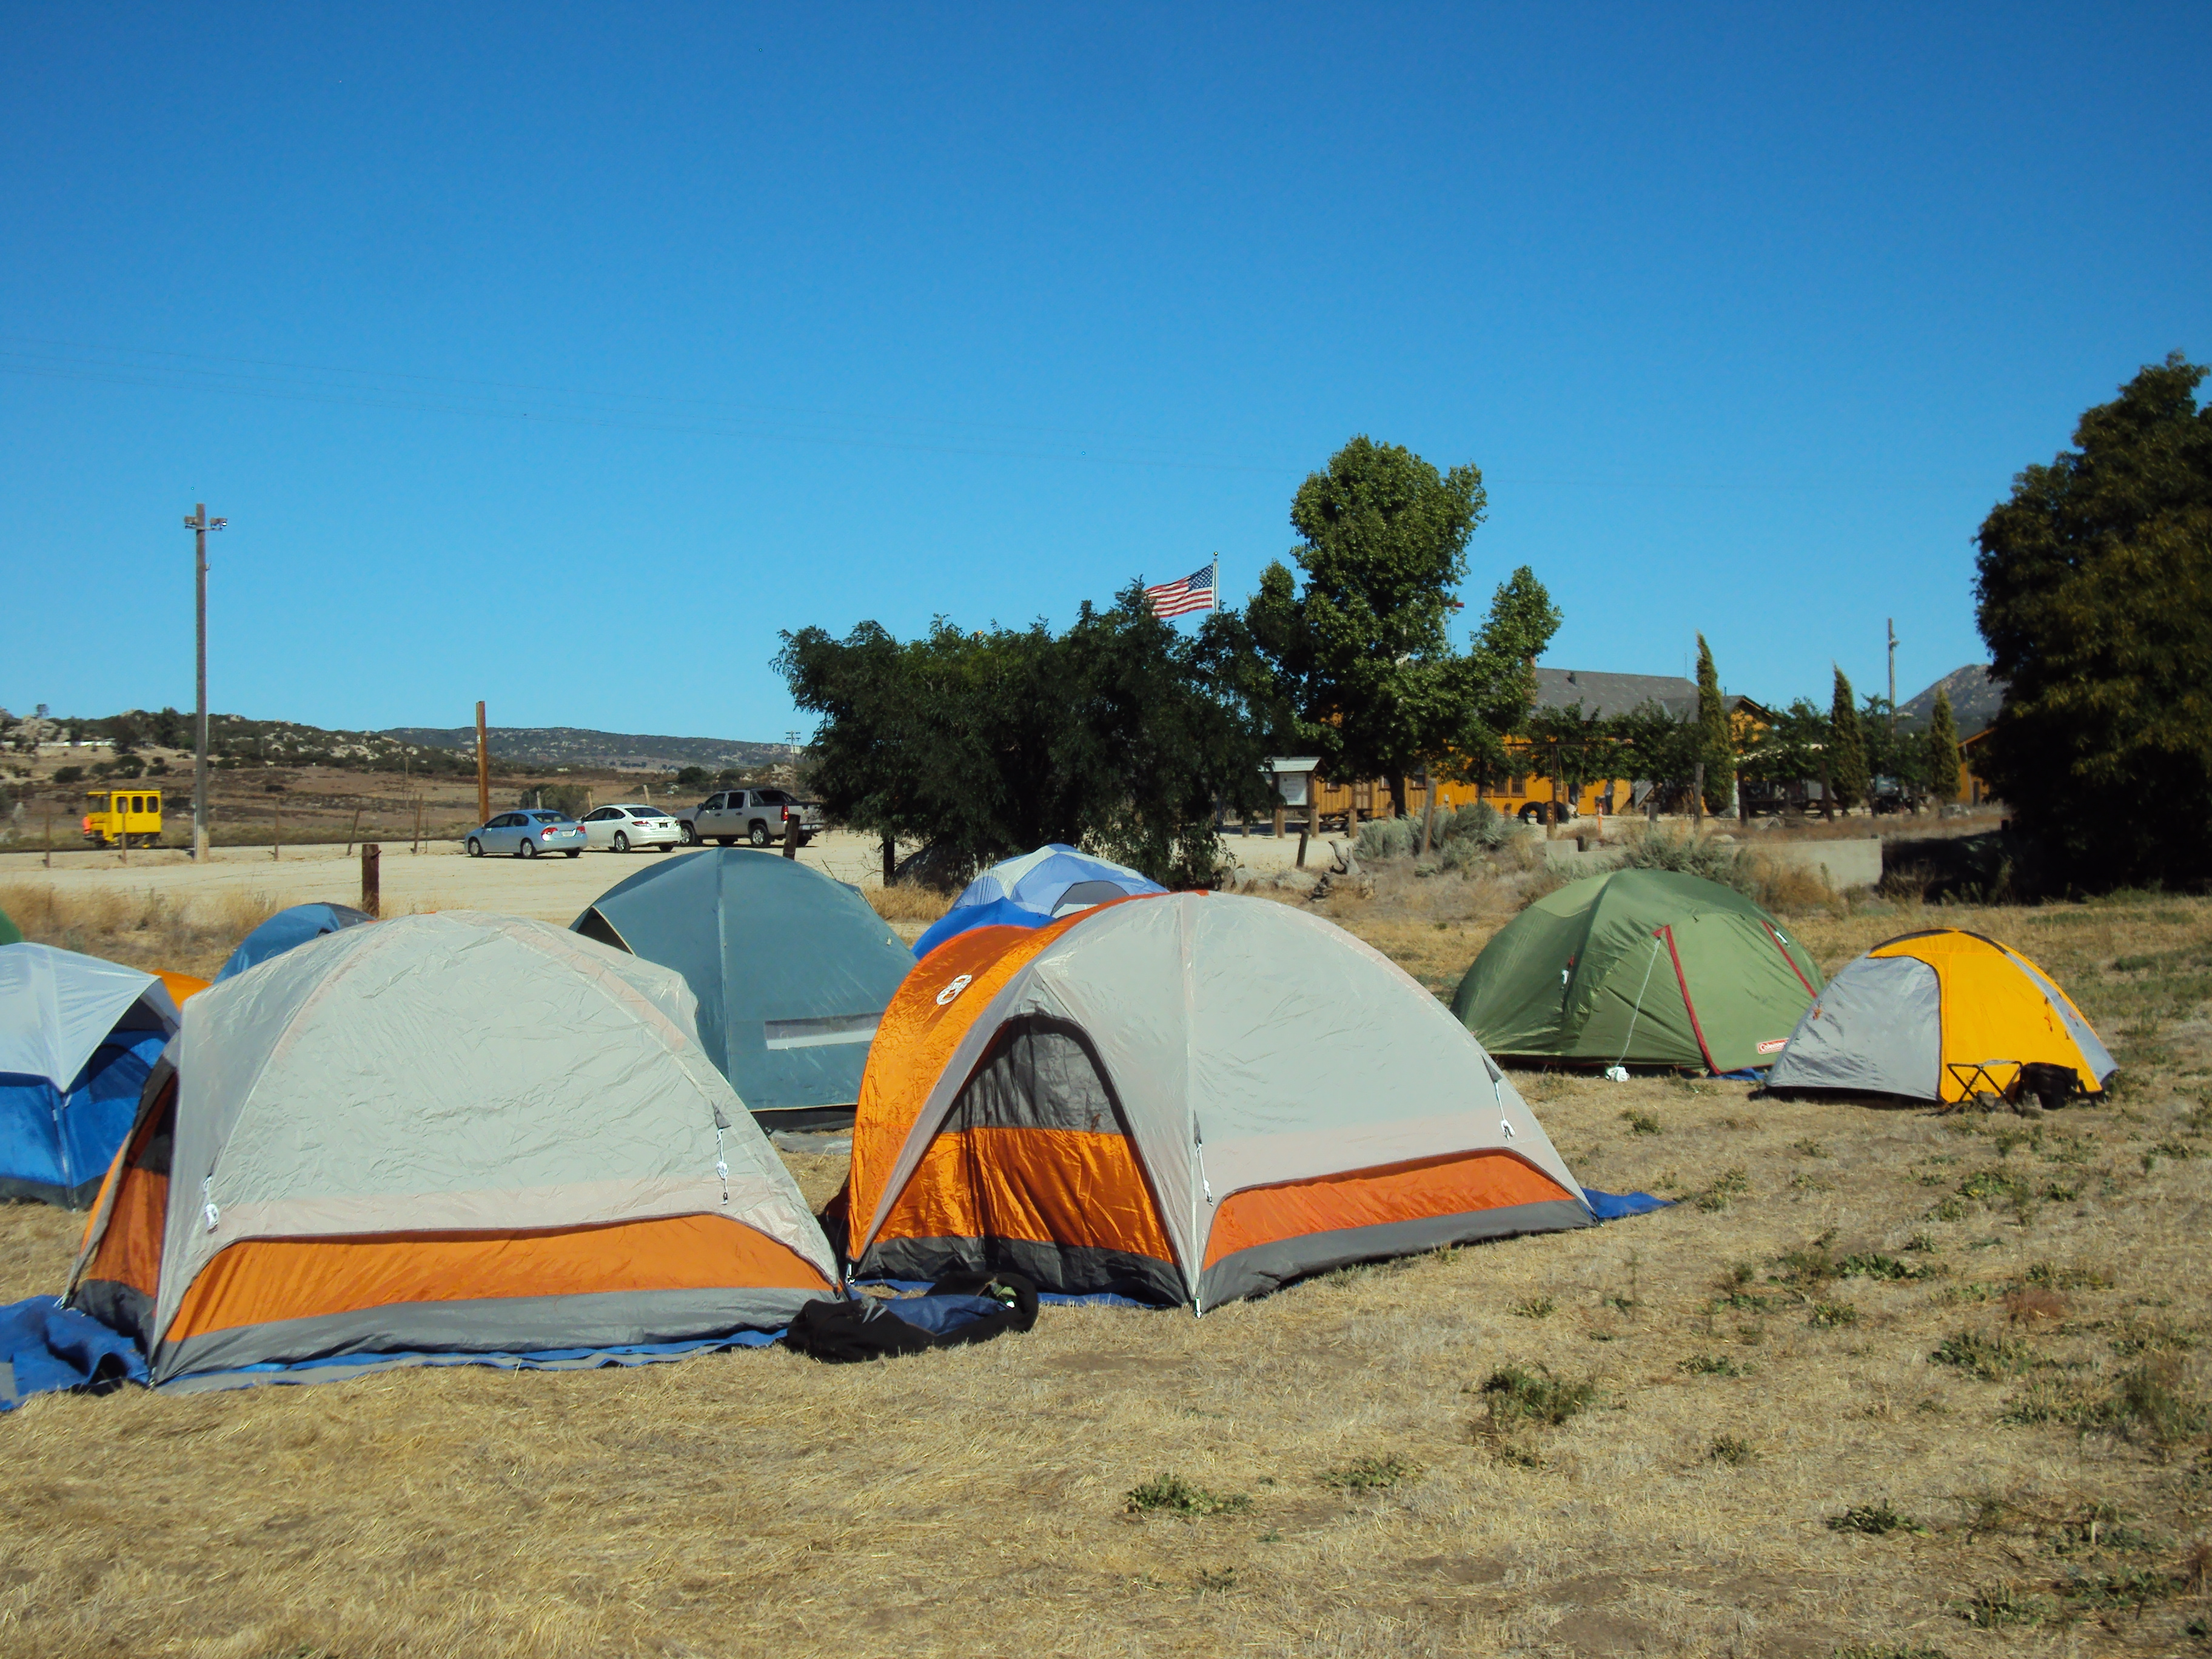 Scouts from Troop 959 pitch their tents just a few steps away from the historic C&o & Scouting Programs u2013 Pacific Southwest Railway Museum